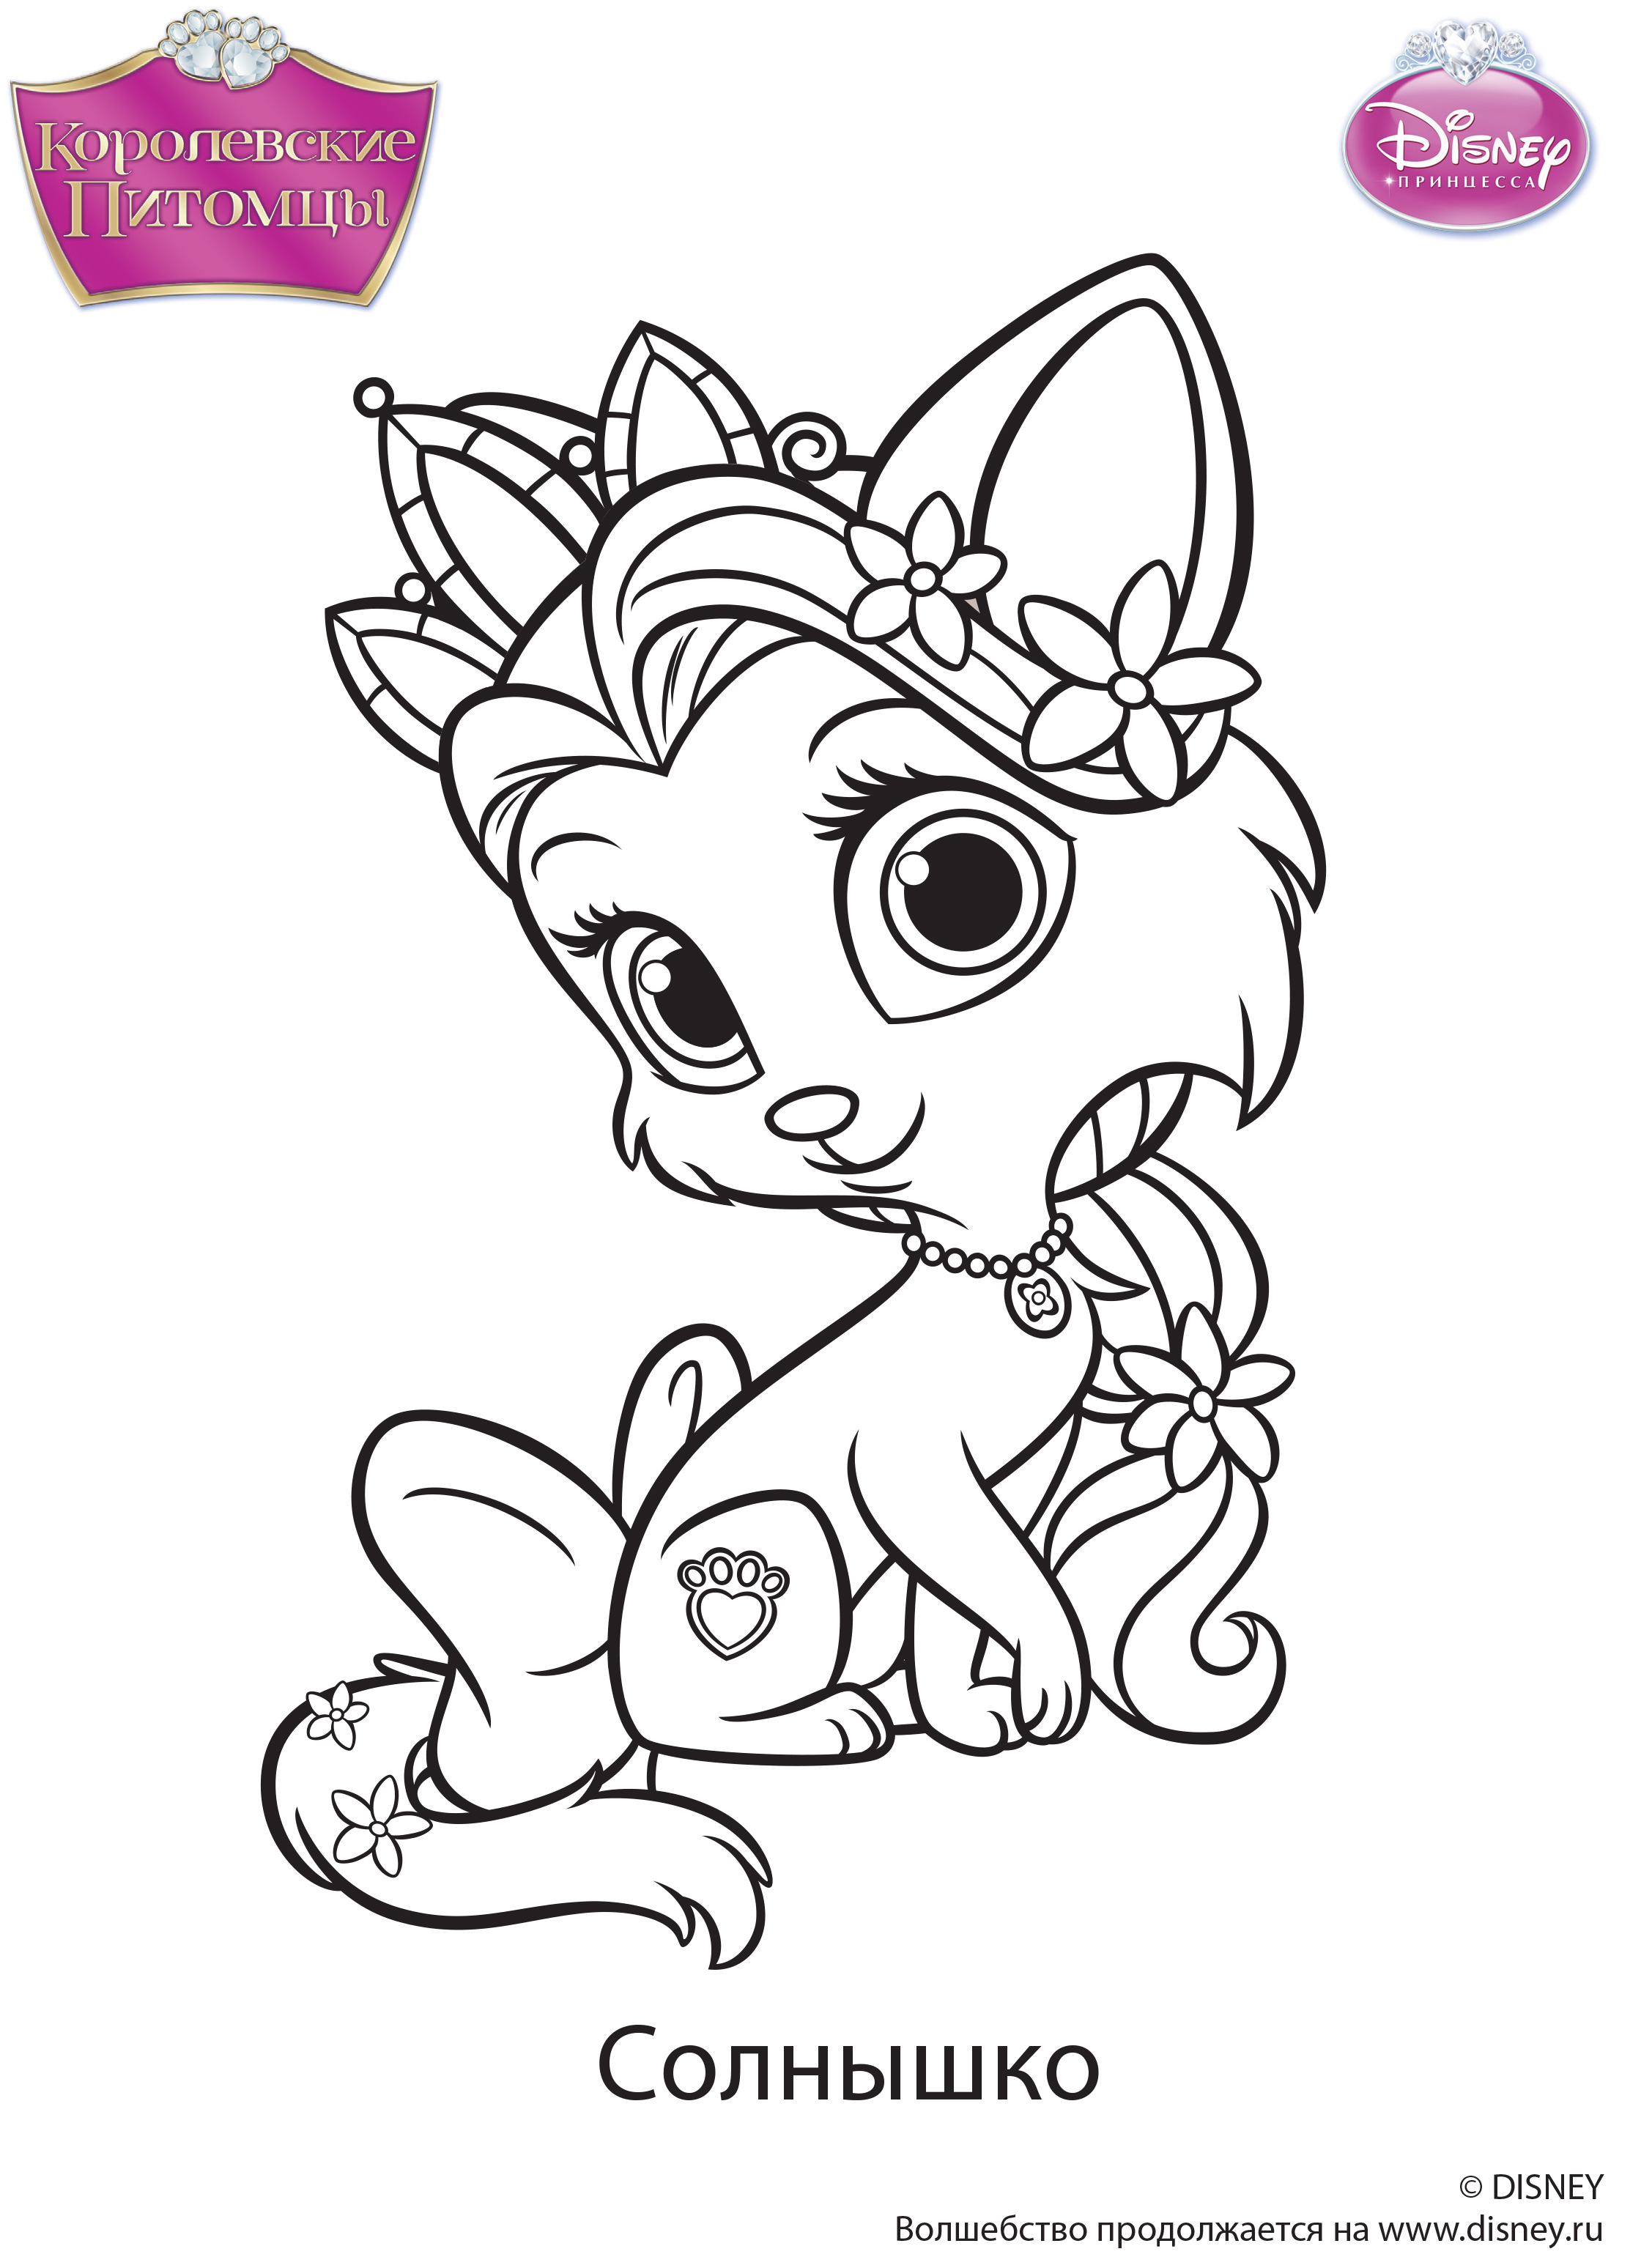 disney pets coloring pages - photo#13